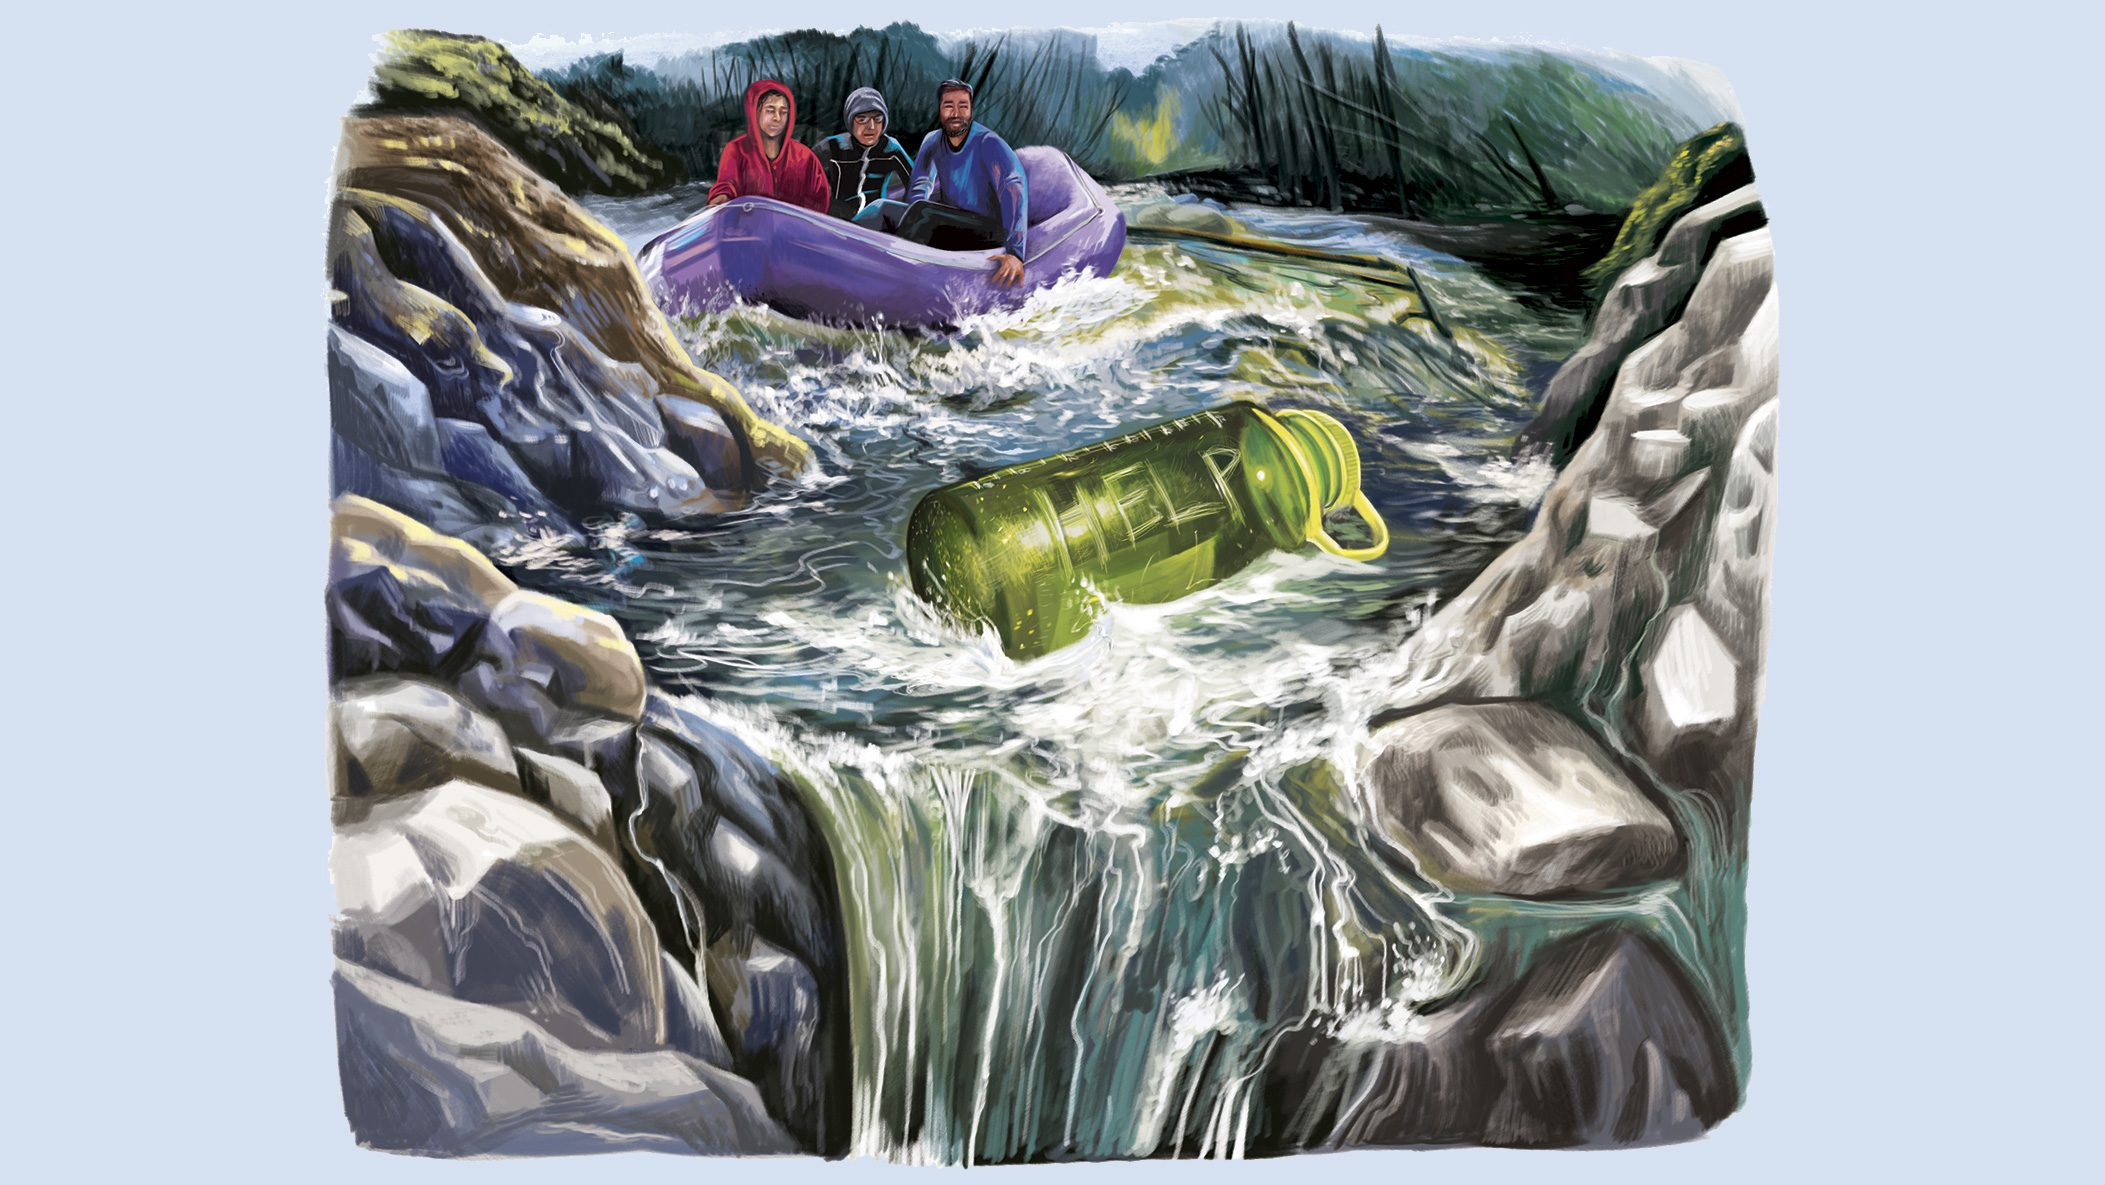 people in a raft nearing a waterfall illustration by gel jamlang